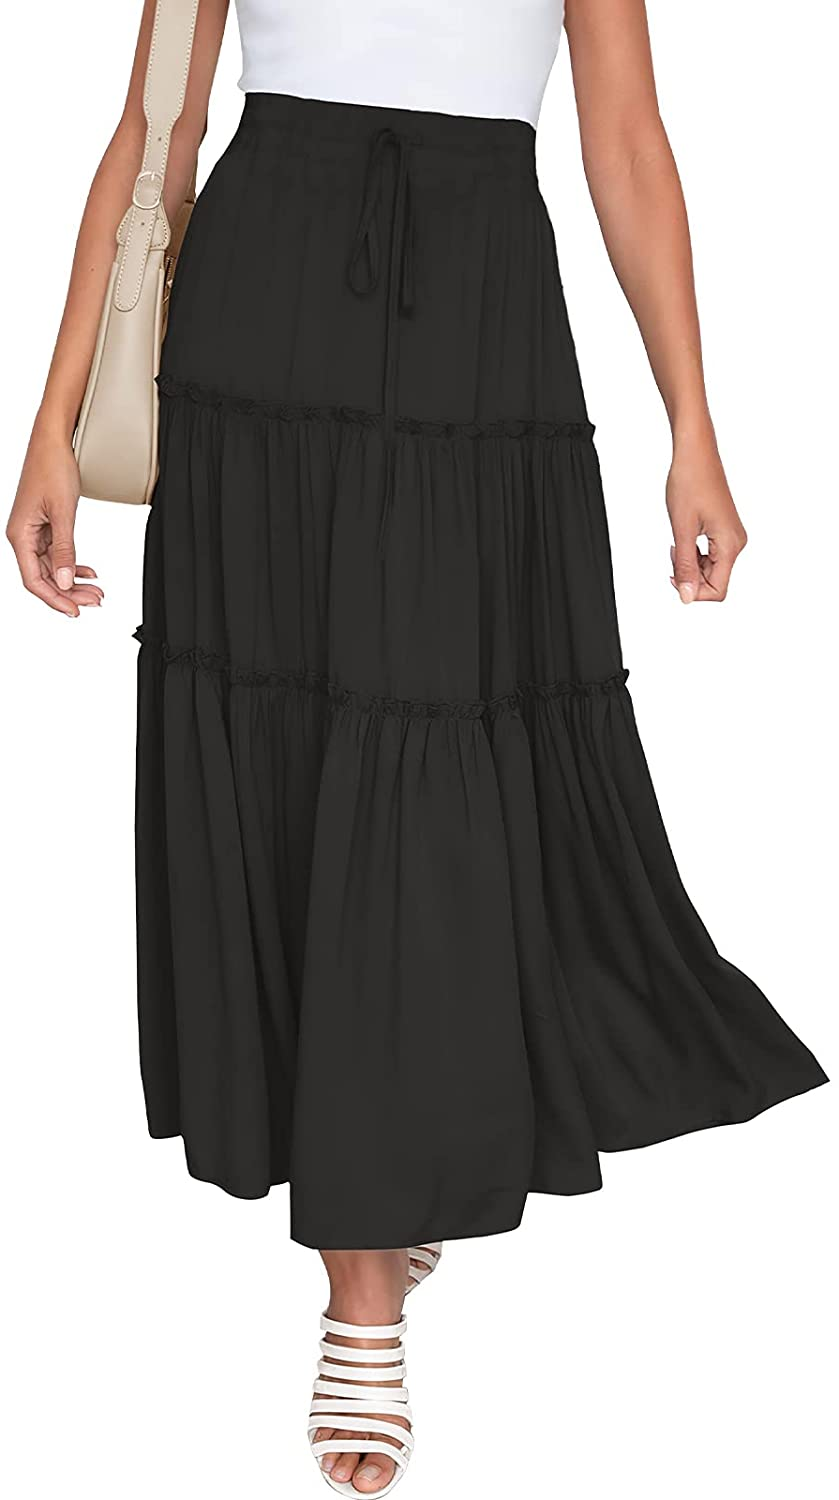 NASHALYLY Skirts for Women Boho Elastic Waisted Drawstring Swing Ruched 3 Tiered Maxi Skirt with Pockets